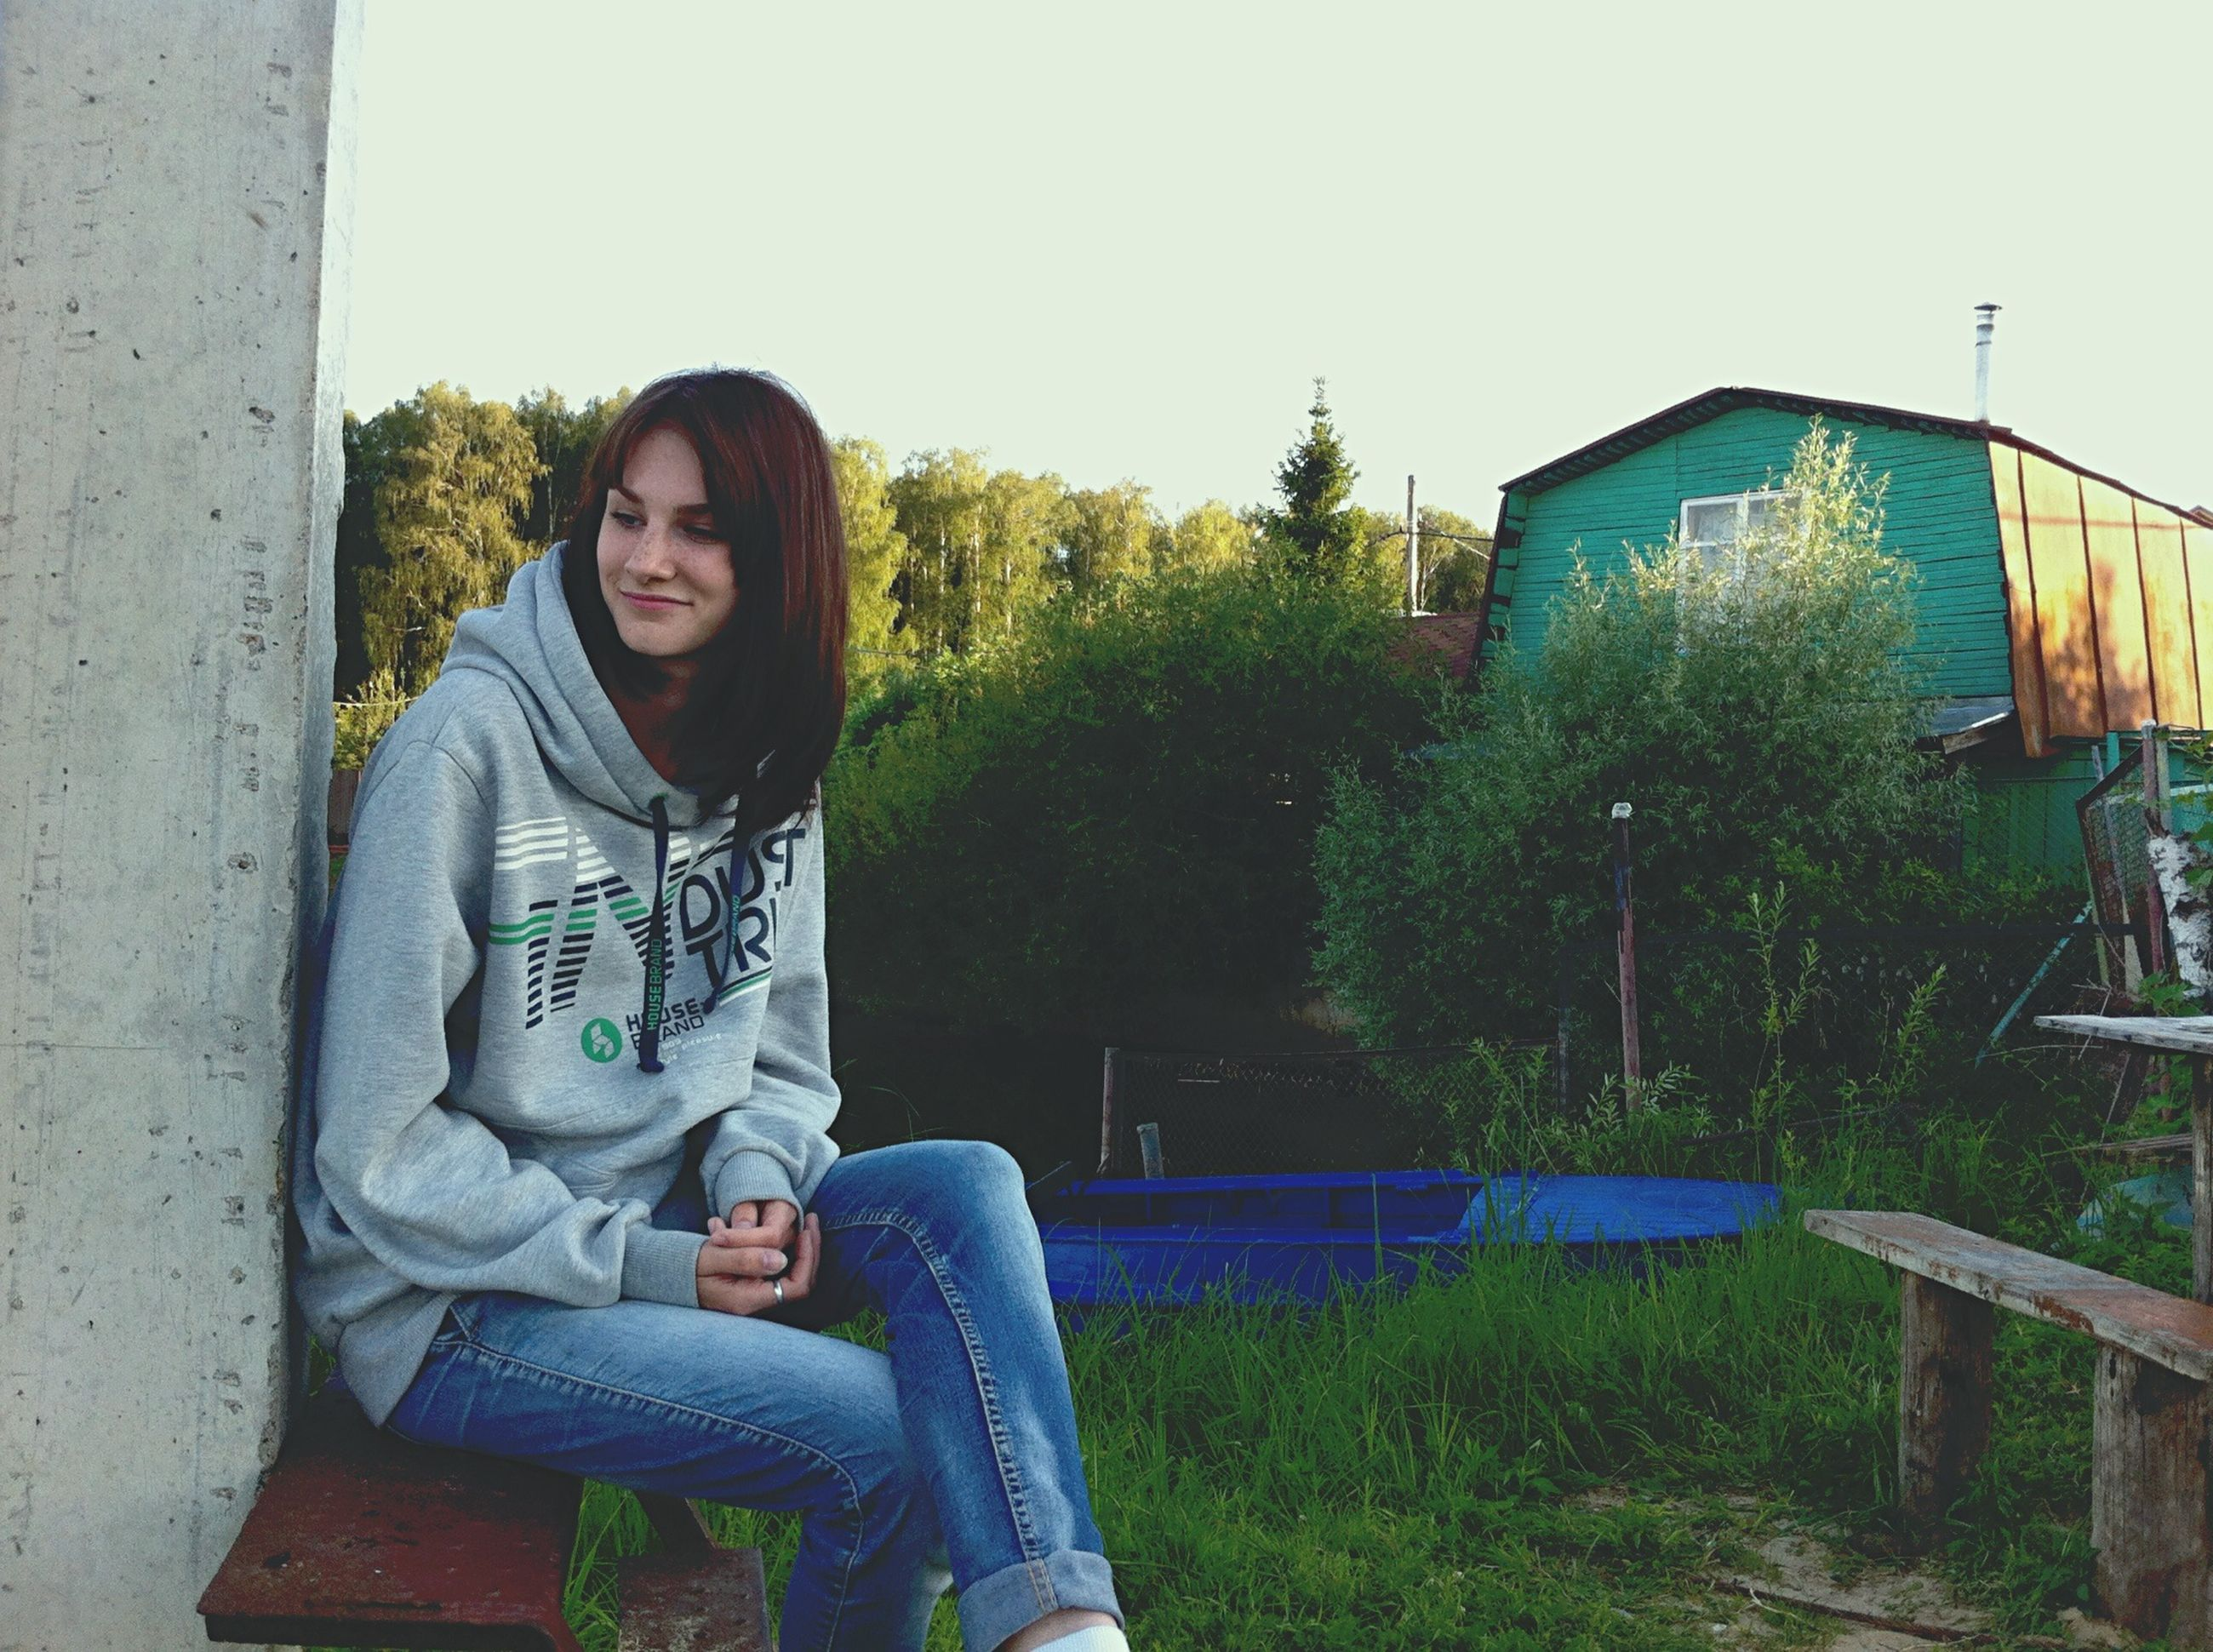 person, casual clothing, lifestyles, leisure activity, sitting, portrait, grass, tree, relaxation, day, plant, green color, front or back yard, outdoors